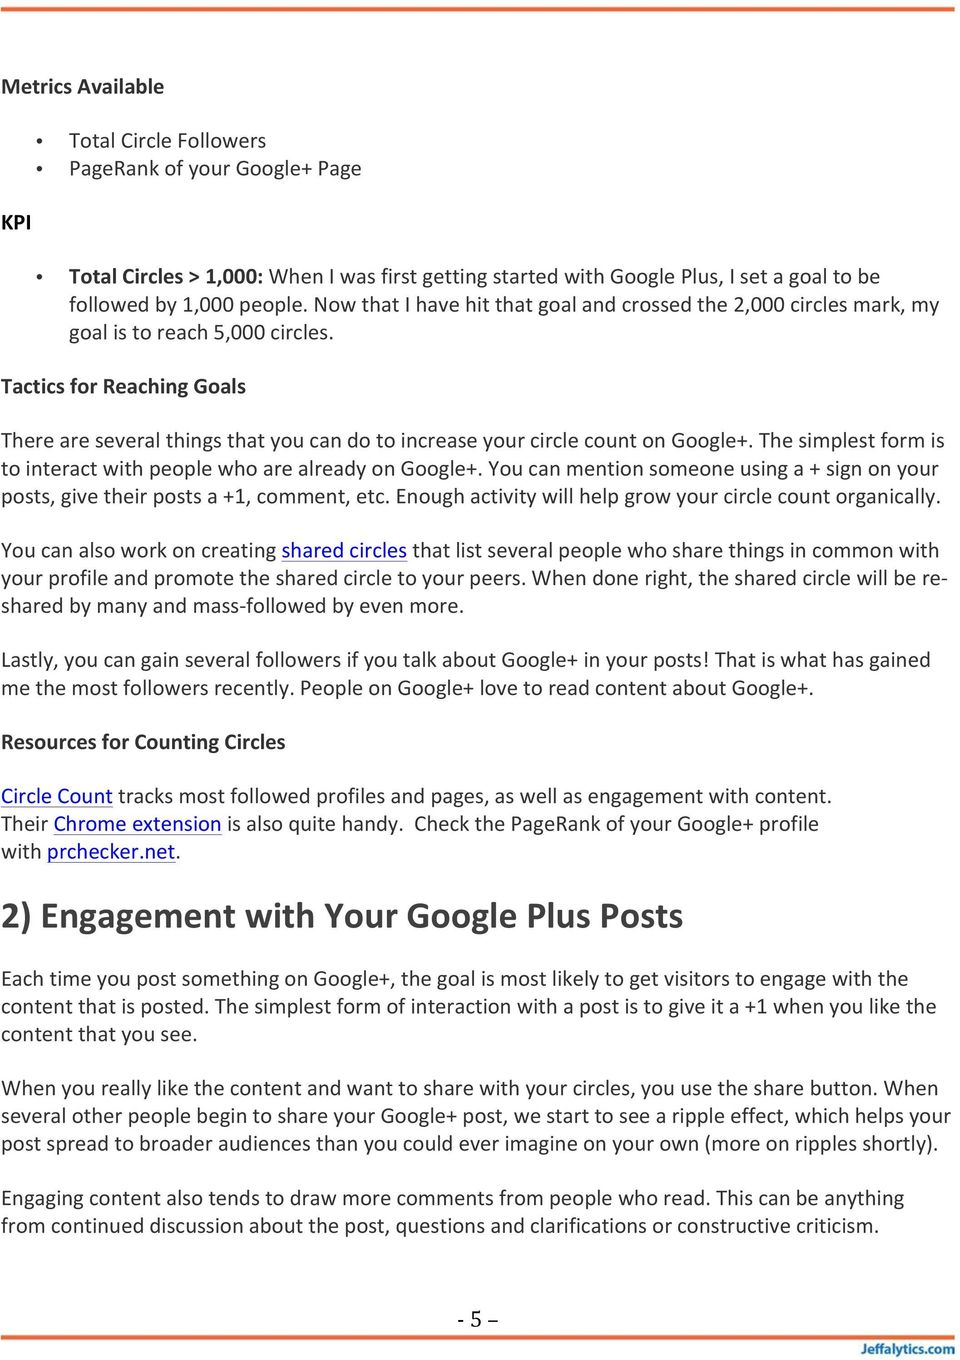 Tactics for Reaching Goals There are several things that you can do to increase your circle count on Google+. The simplest form is to interact with people who are already on Google+.